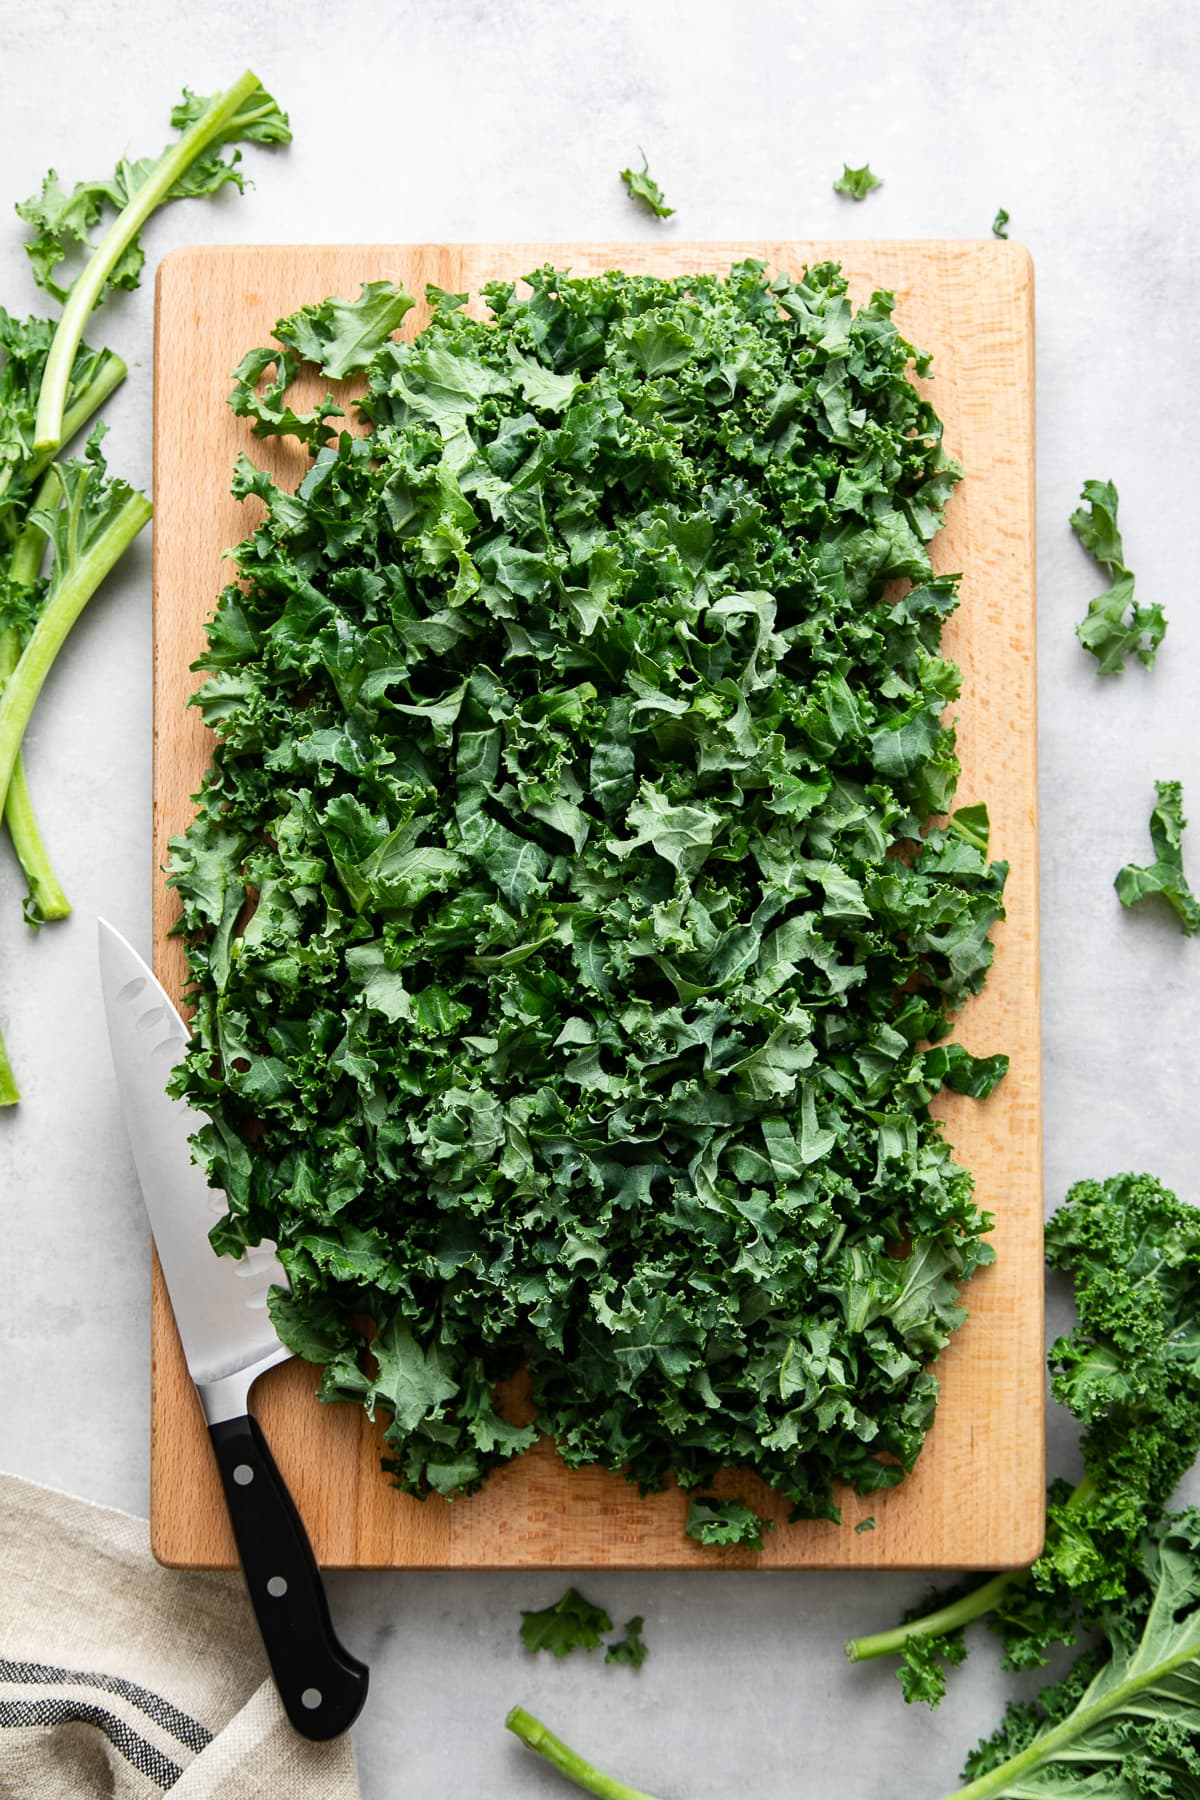 top down view of chopped kale on a cutting board with items surrounded.